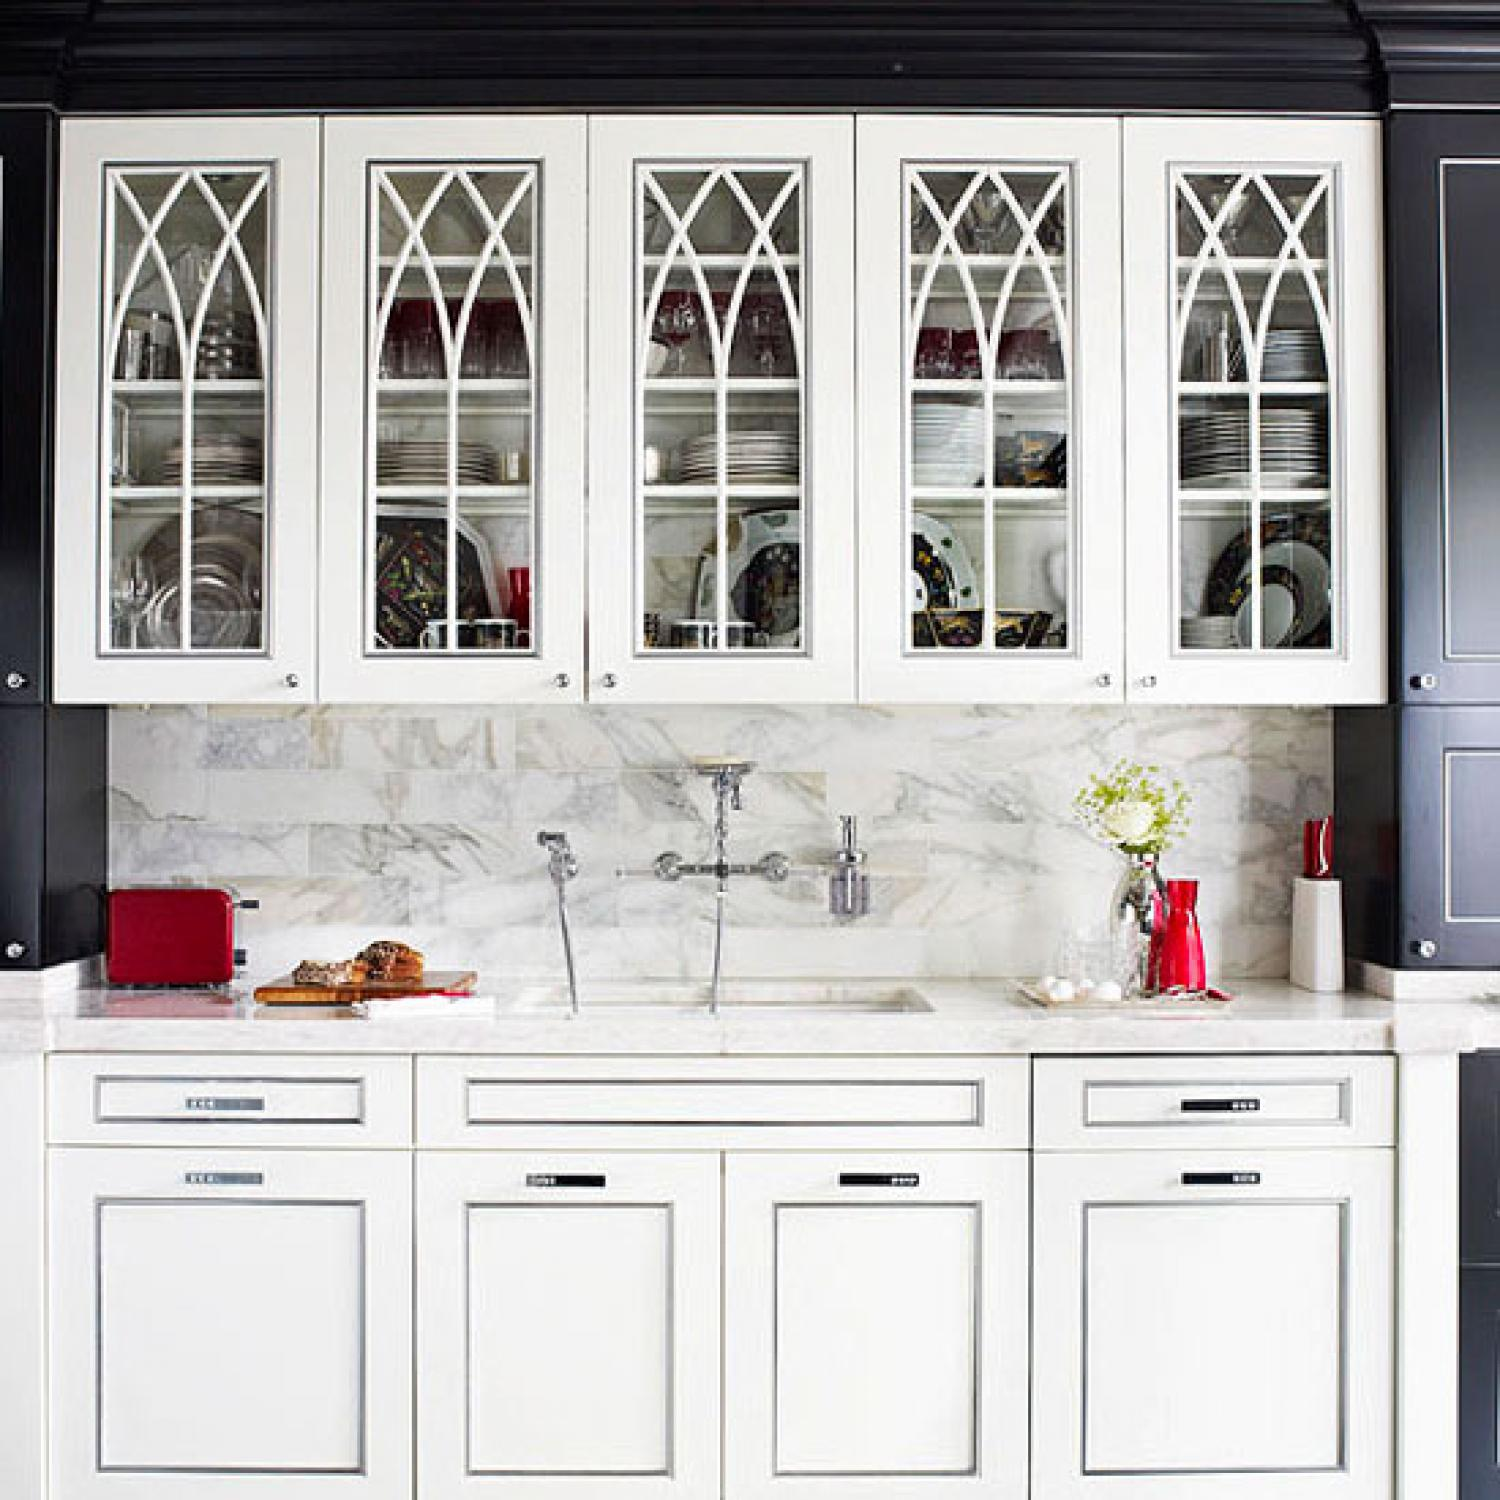 How To Make Glass Kitchen Cabinet Doors: Window Mullion Inserts & Accent Cabinet Doors Styles From